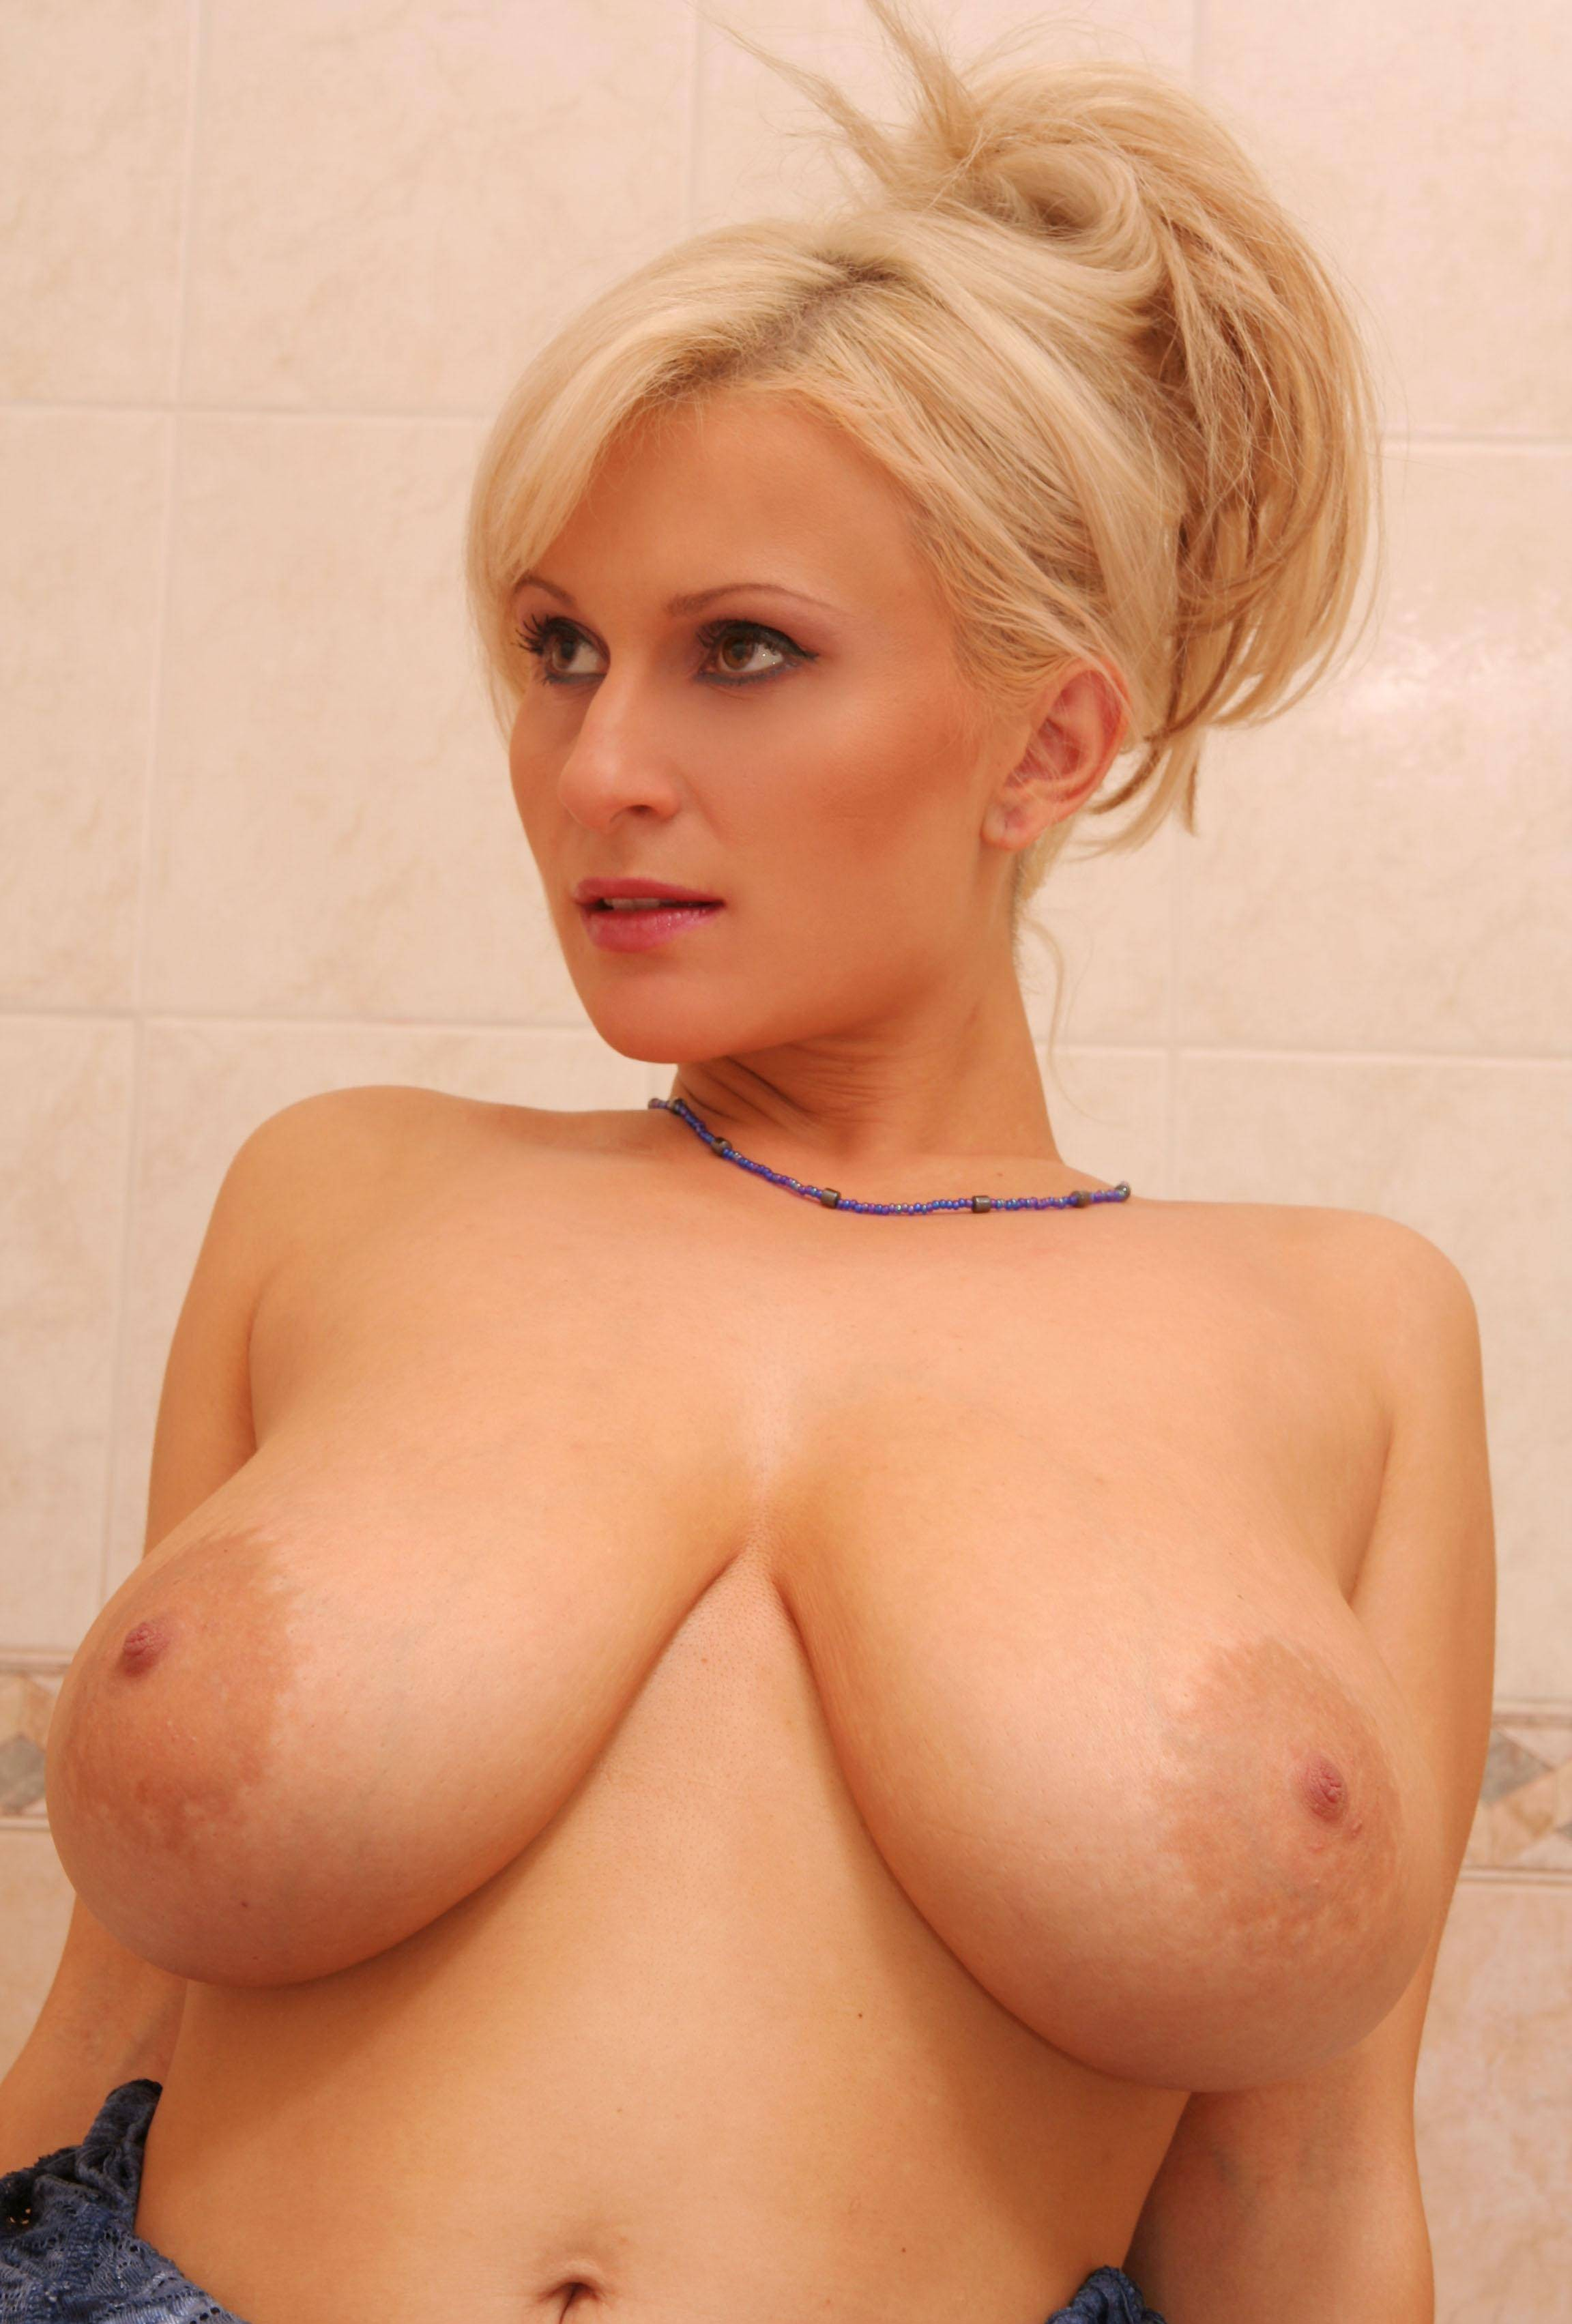 Big boobs nd tits